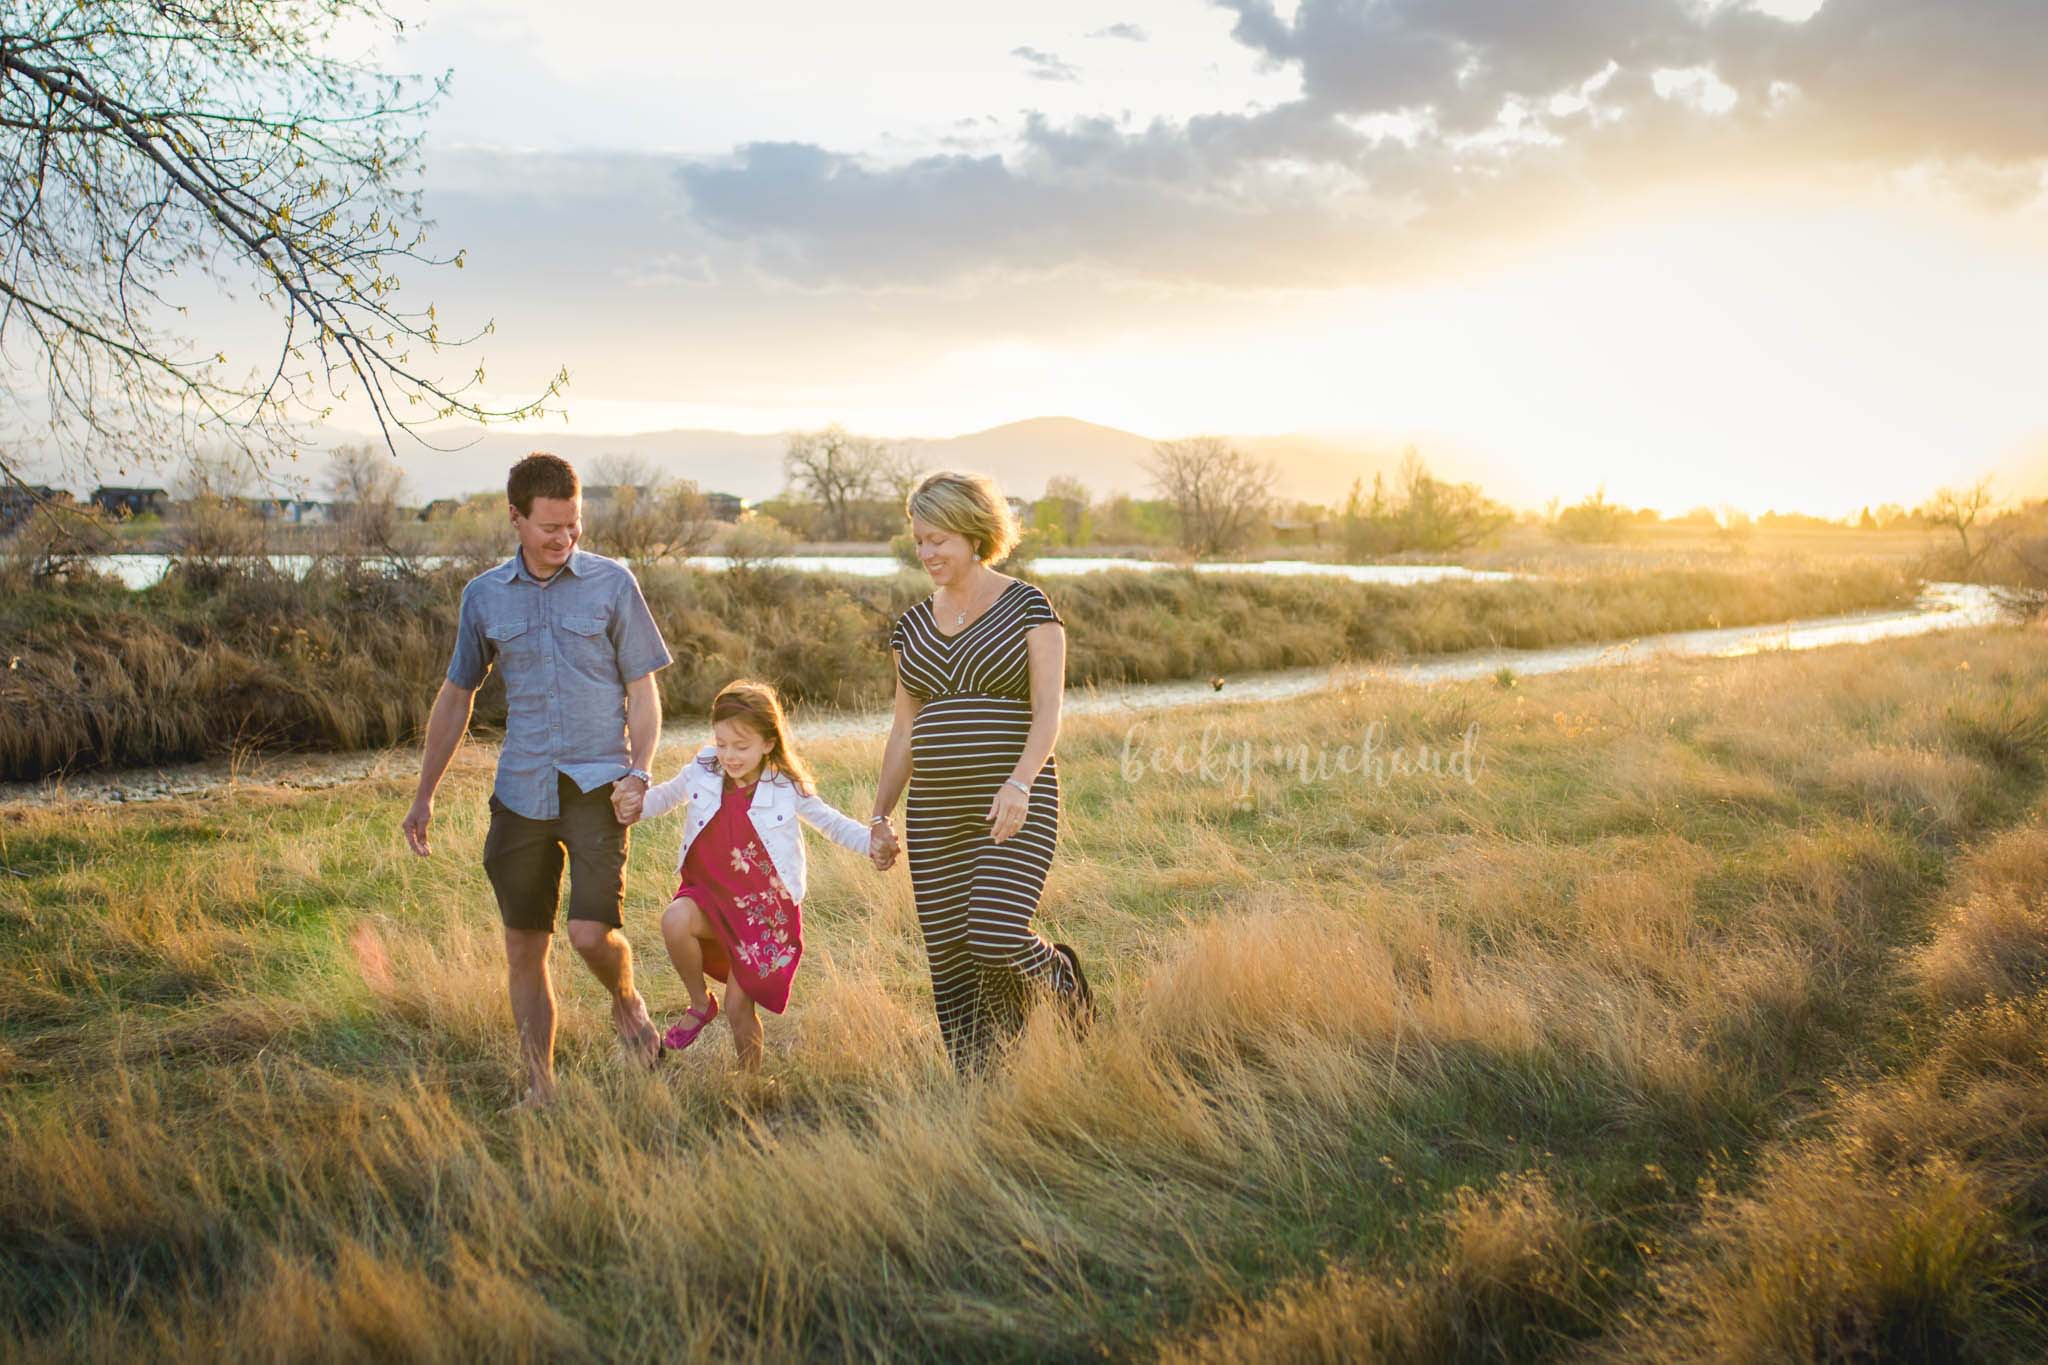 A couple walks through a field with their little girl and a baby on the way